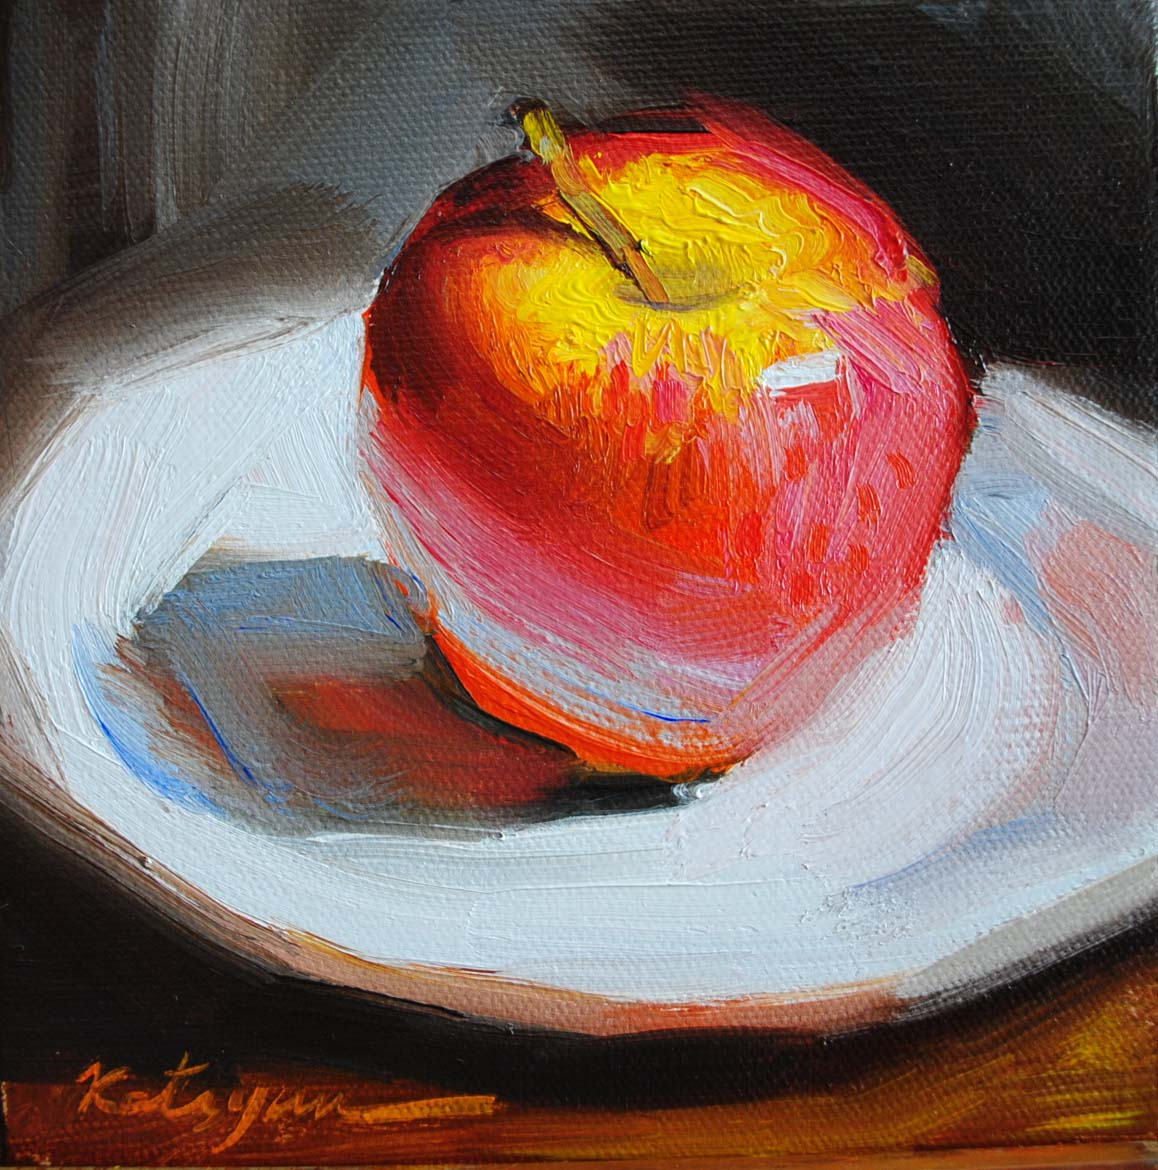 """Red Apple"" original fine art by Elena Katsyura"